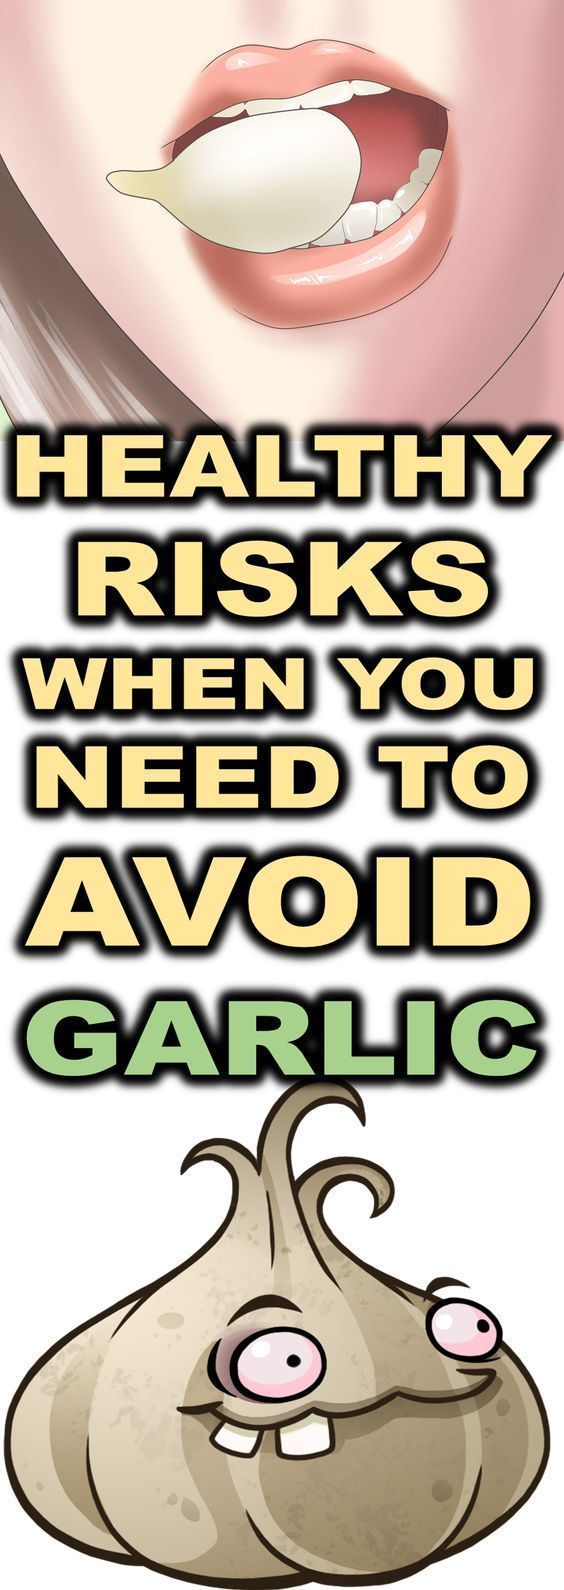 Healthy Risks When You Need To Avoid Garlic